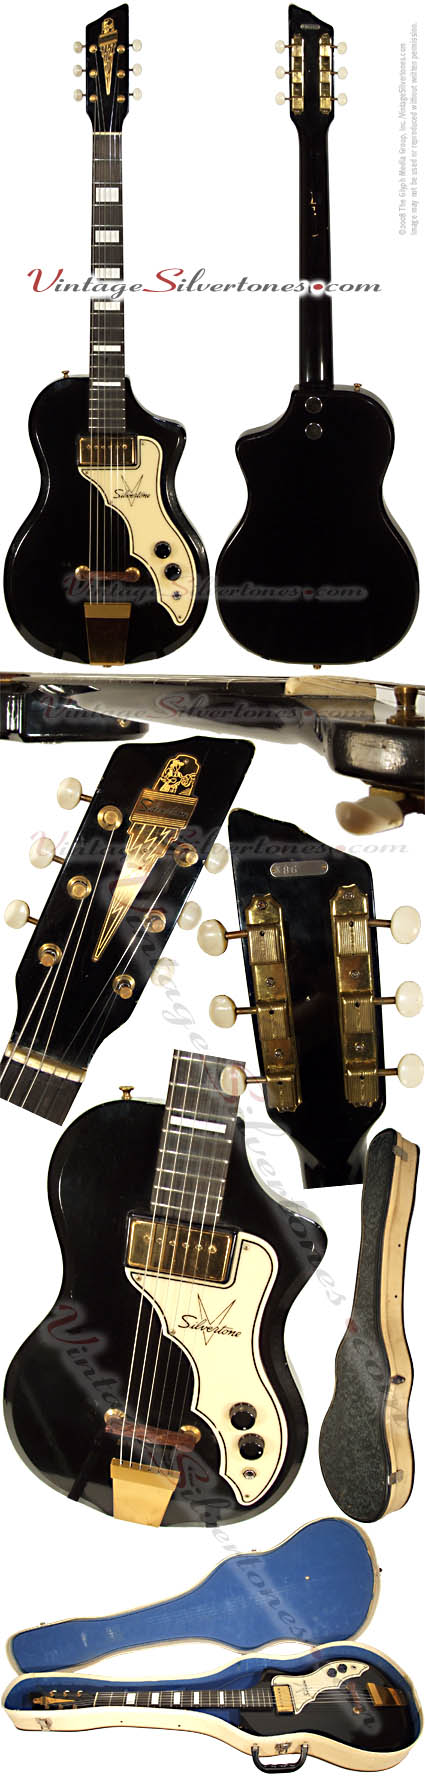 Silvertone Artist electric guitar with one single coil pickup in black with all gold hardware and original case made by Supro in 1958  Chicago IL